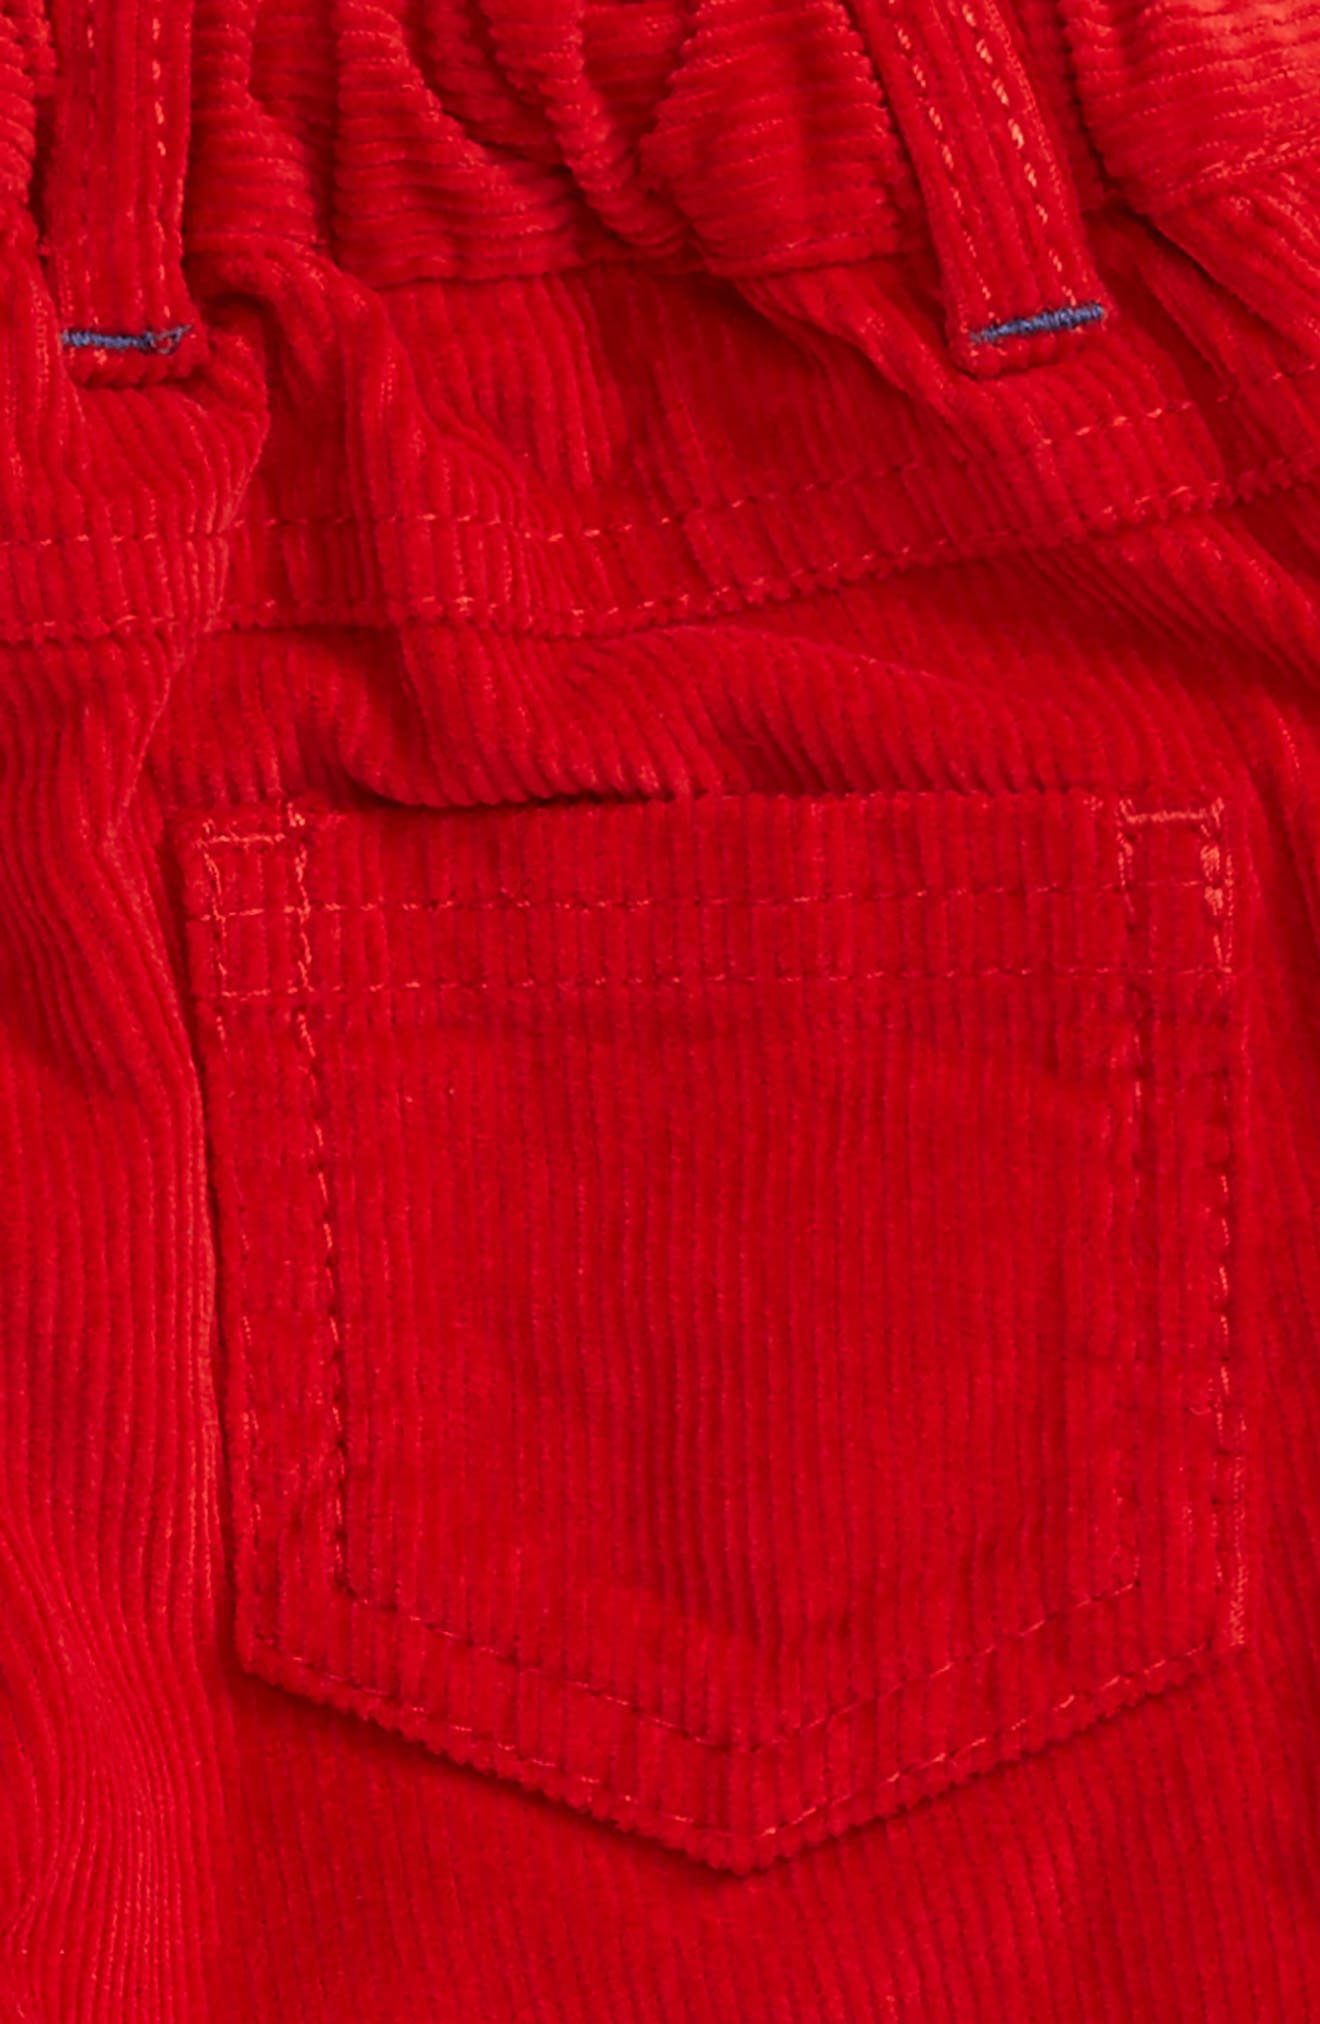 Lined Corduroy Pants,                             Alternate thumbnail 3, color,                             Red Engine Red